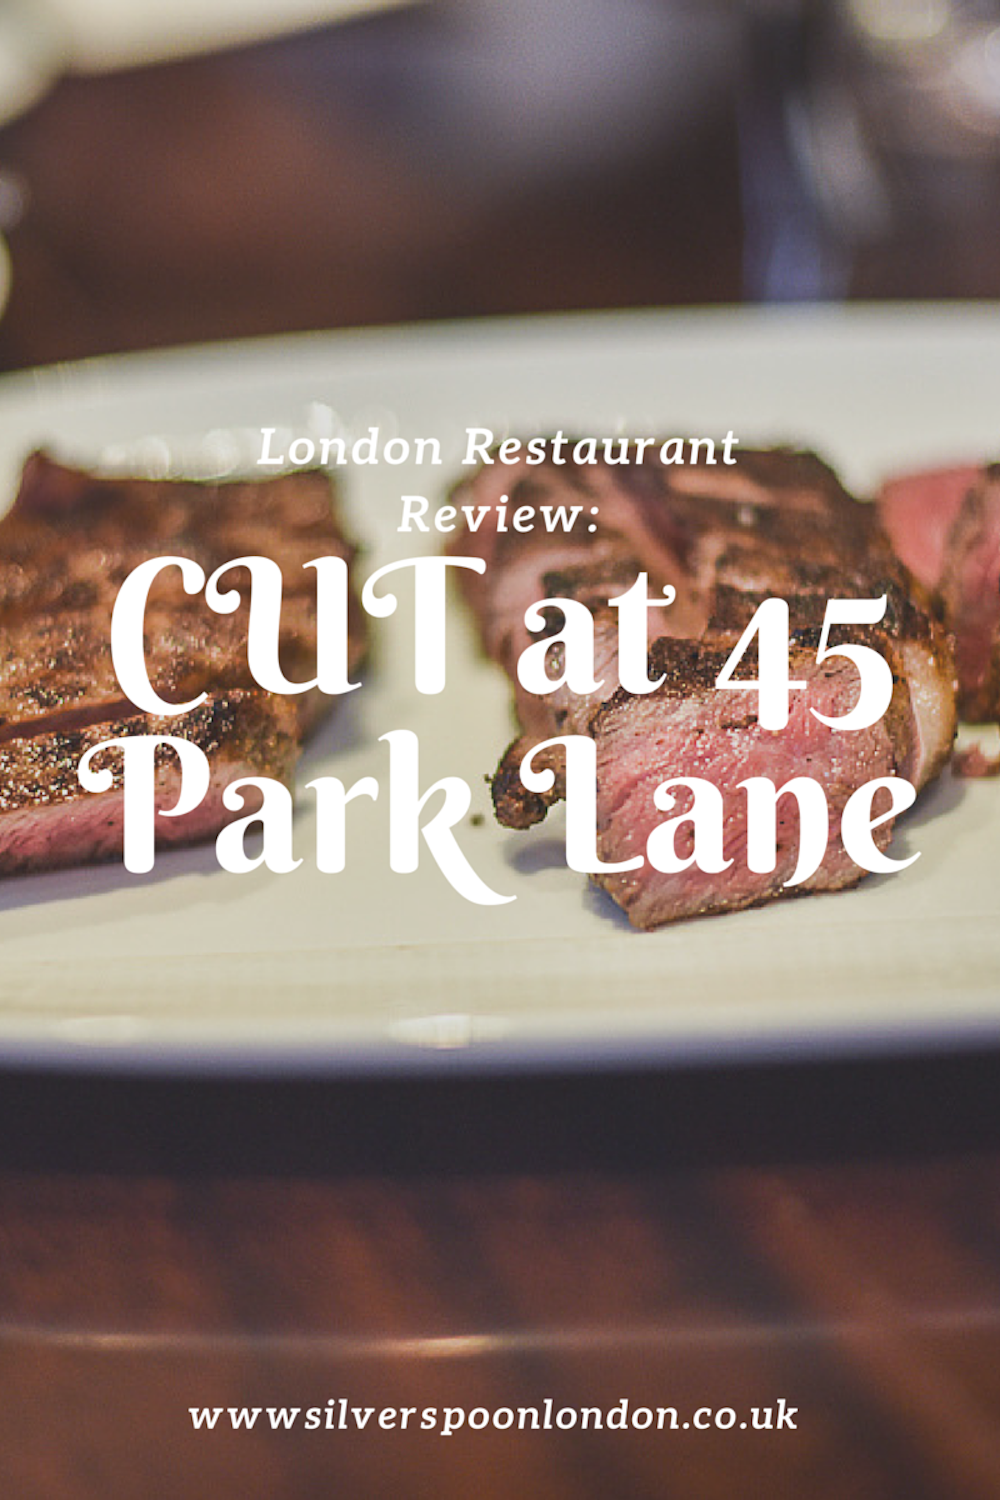 Restaurant Review: CUT at 45 Park Lane